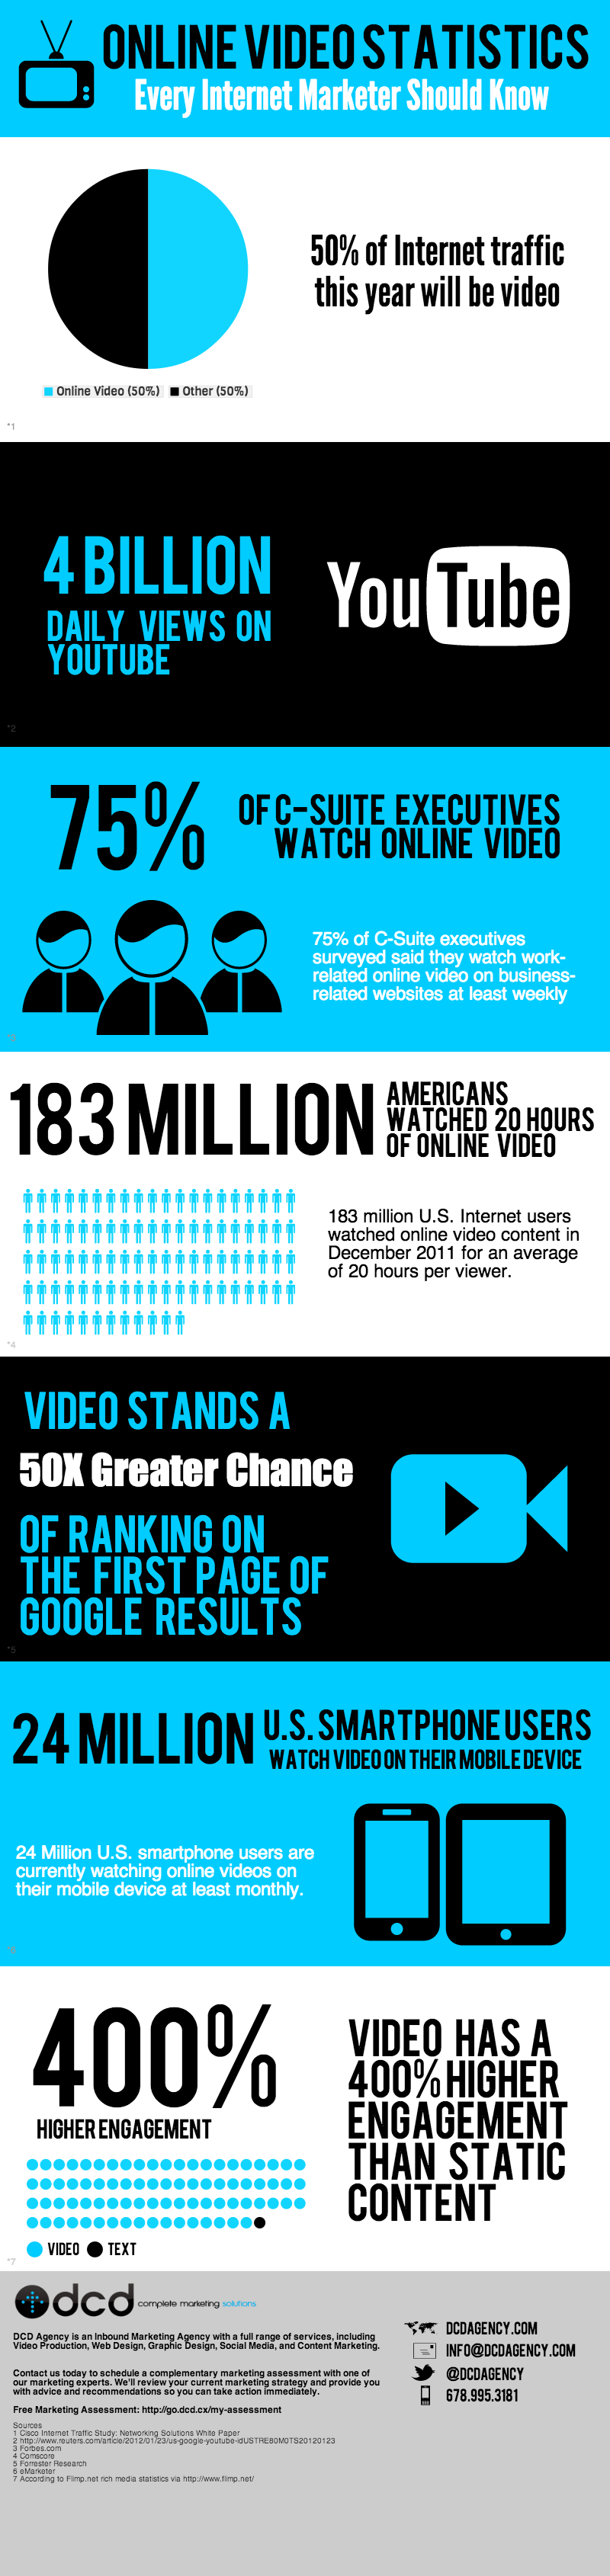 Online-Video-Statistics-Every-Marketer-Should-Know-V1-DCDAGENCY